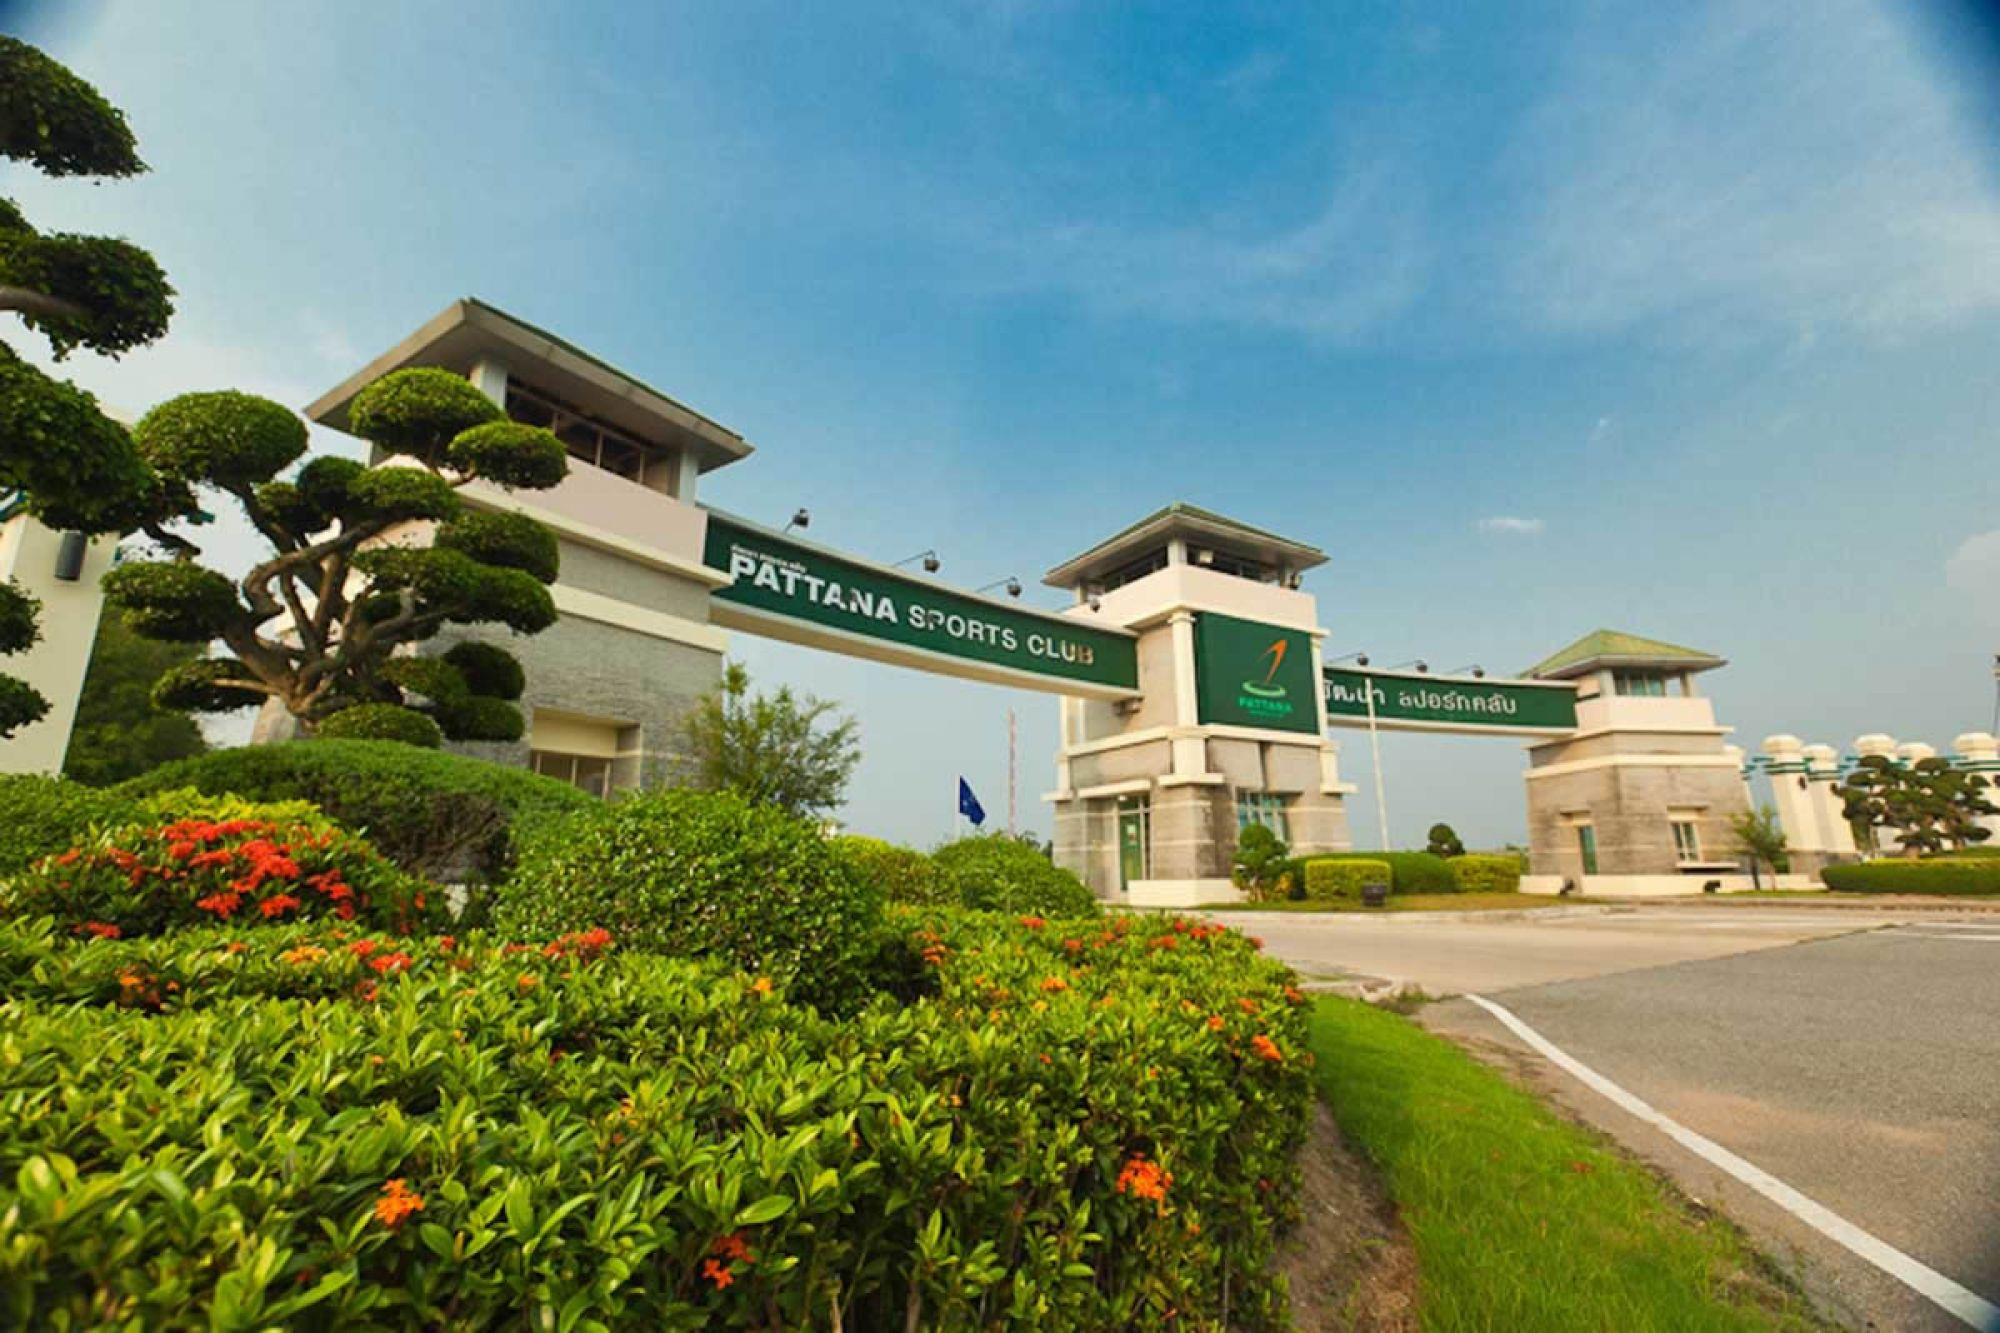 All The Pattana Sports Club's impressive golf course situated in breathtaking Pattaya.